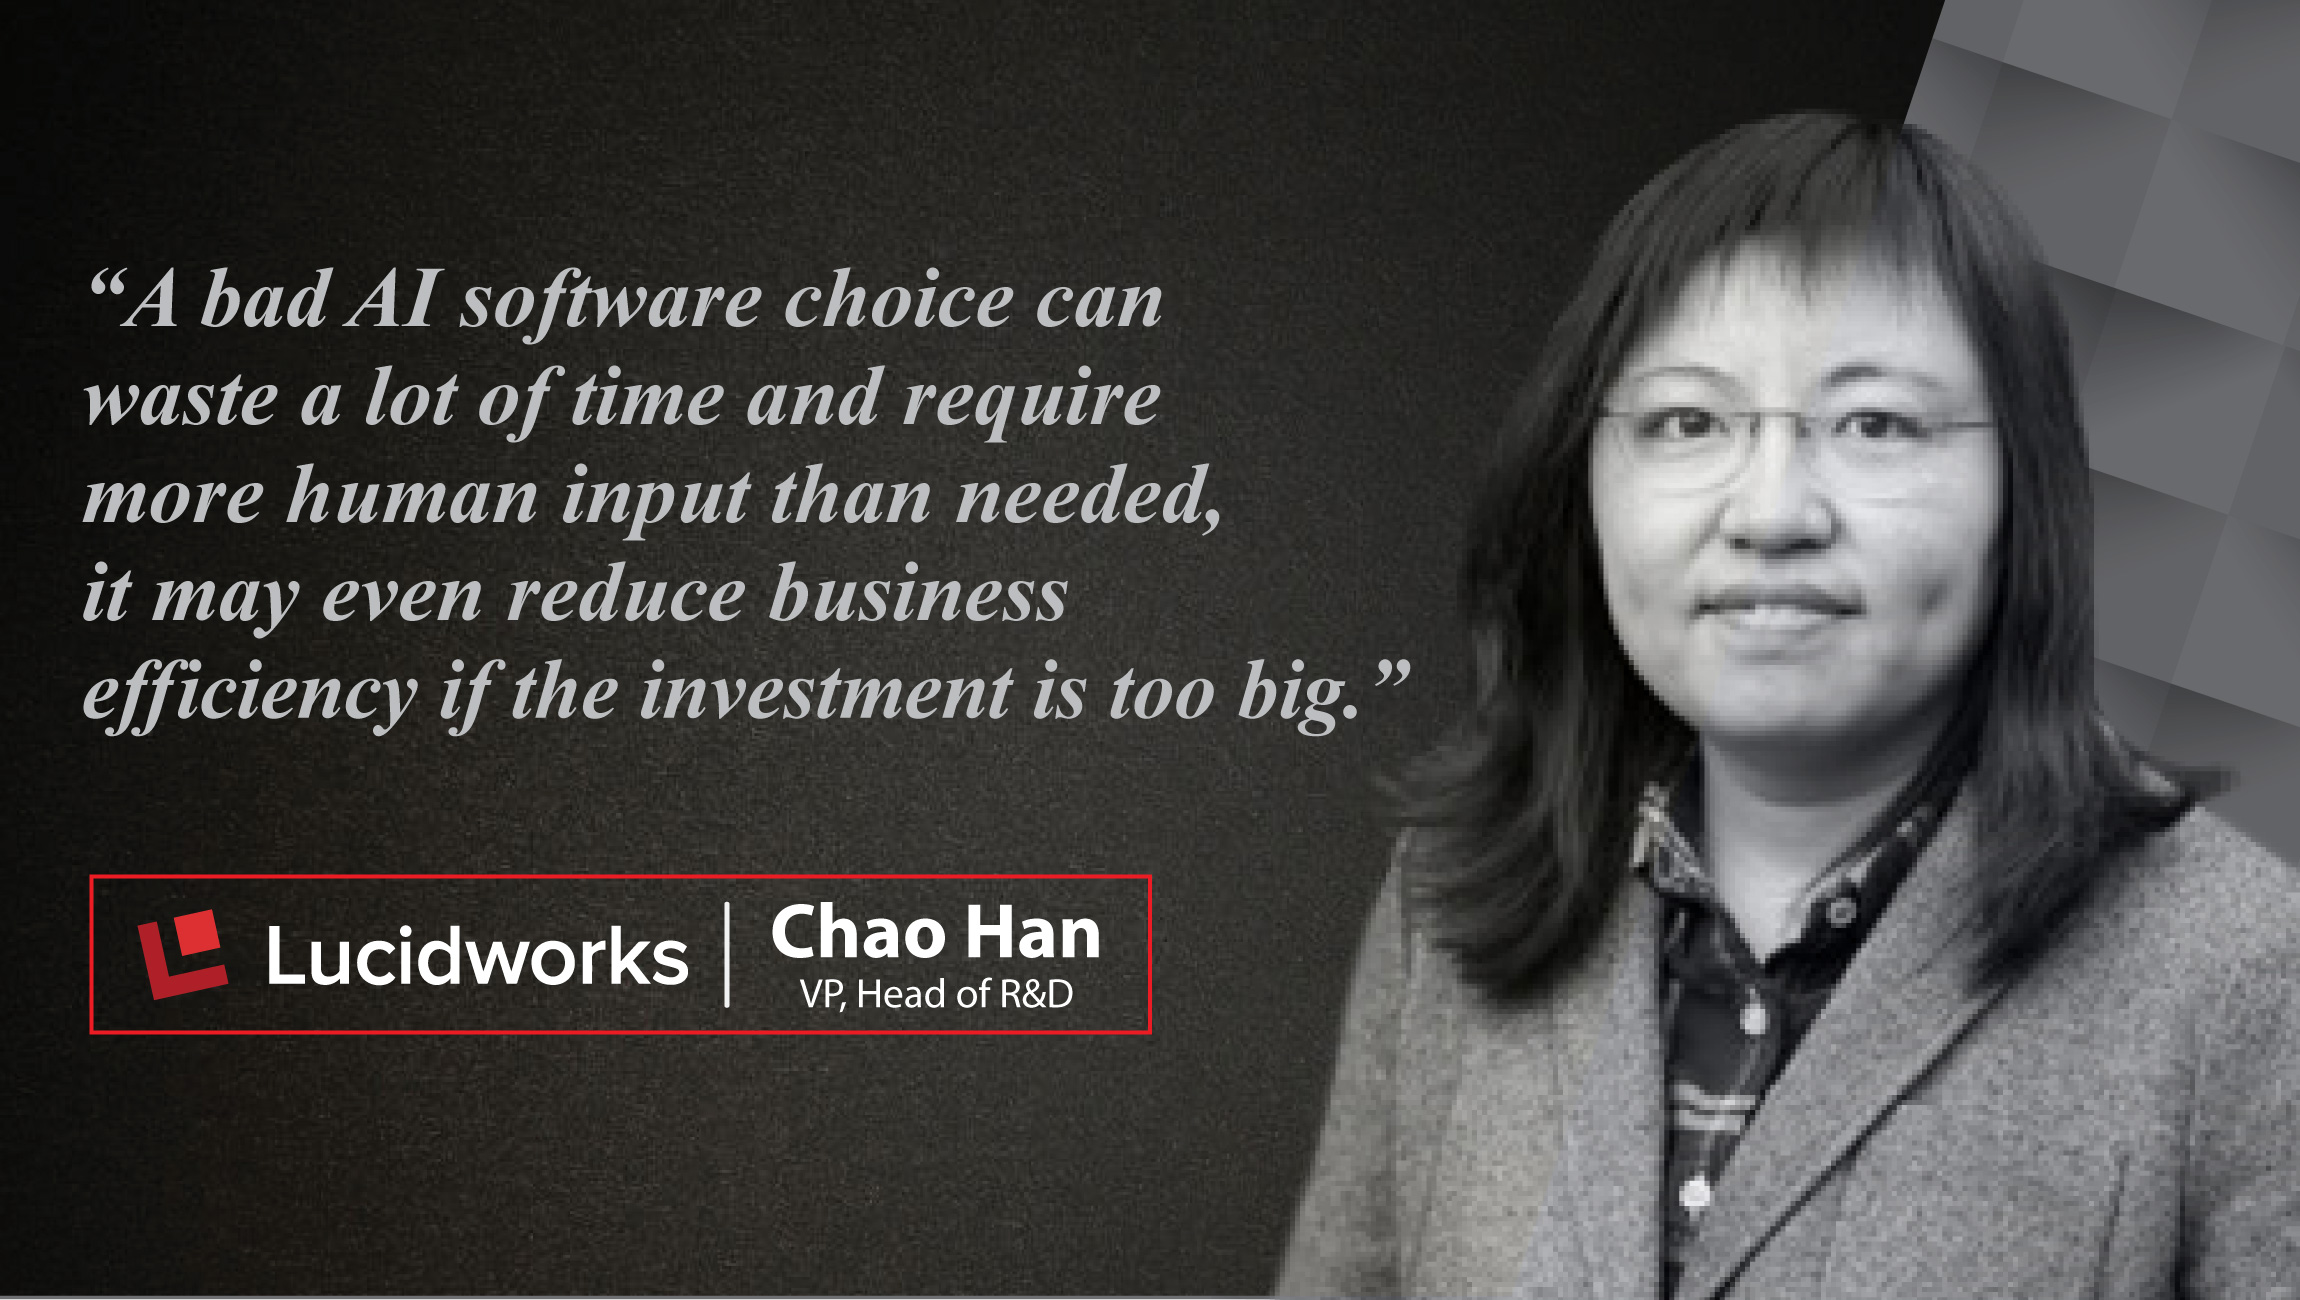 Chao han quote